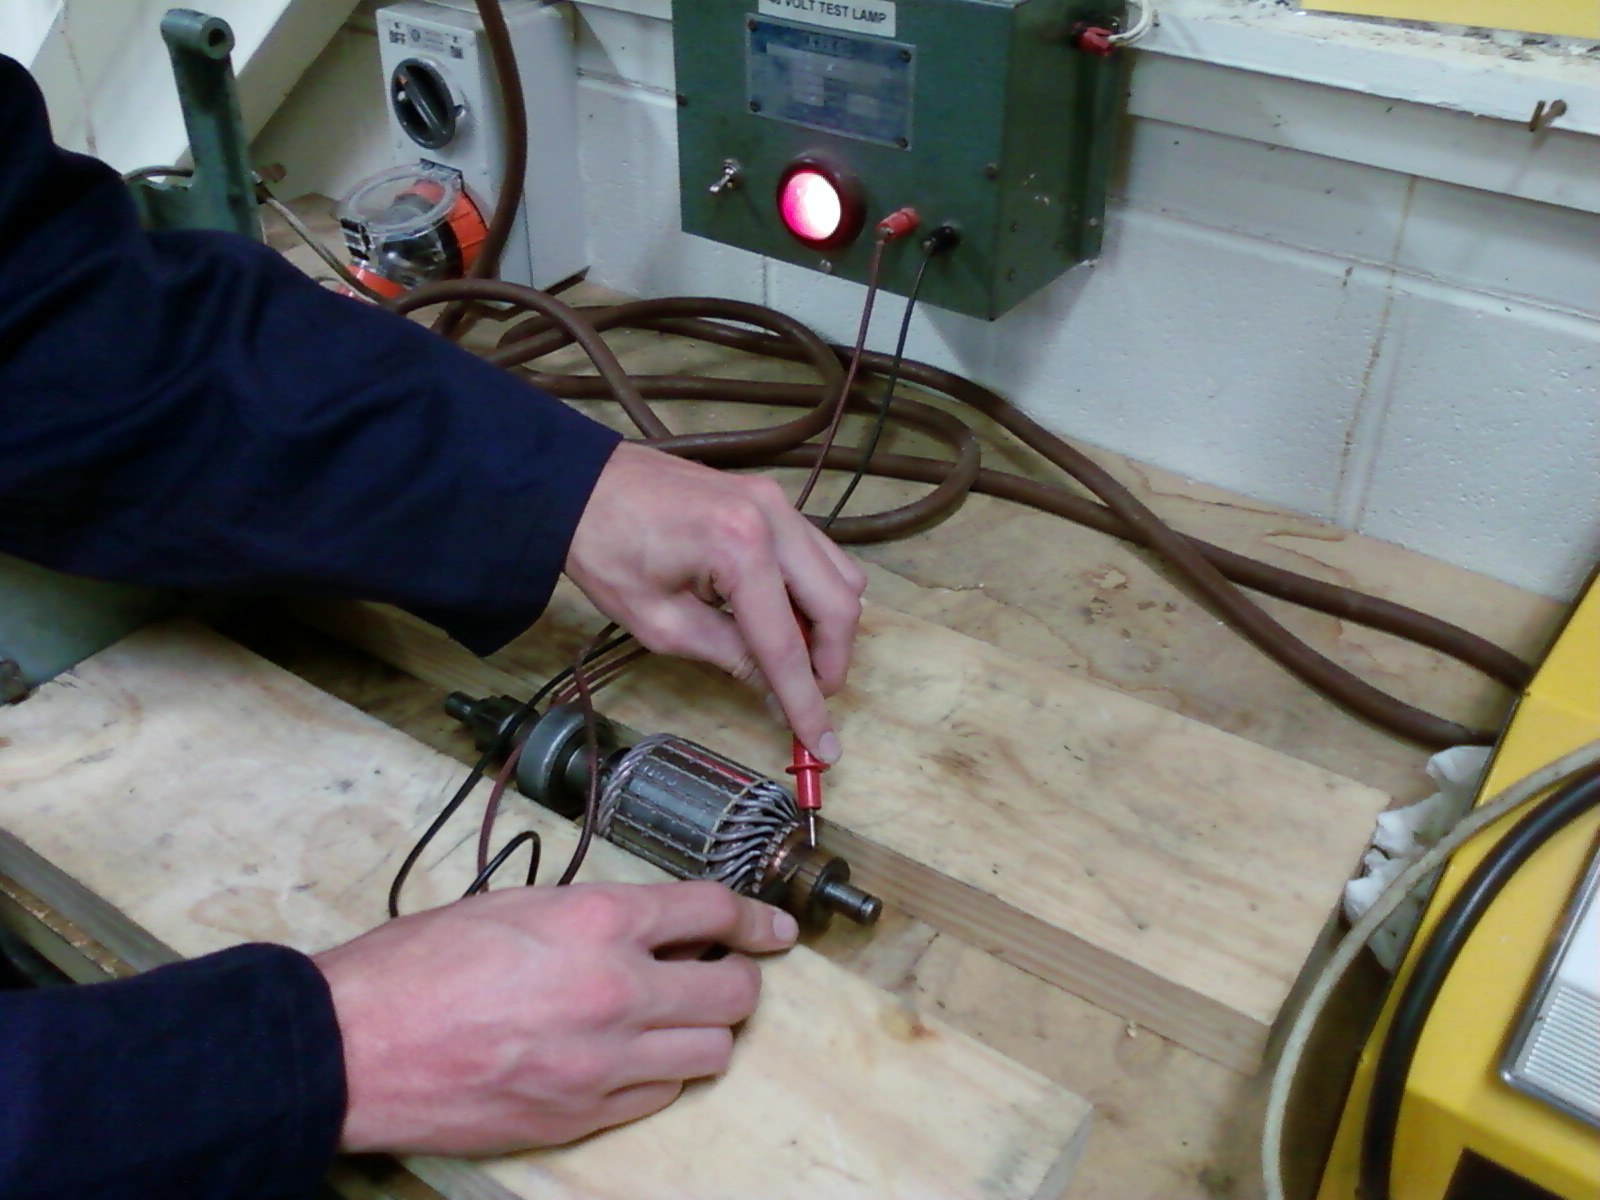 Richard Ttec 4841 Starter Motor Bench Repair And On Car Testing Voltage Drop Test The Circuit